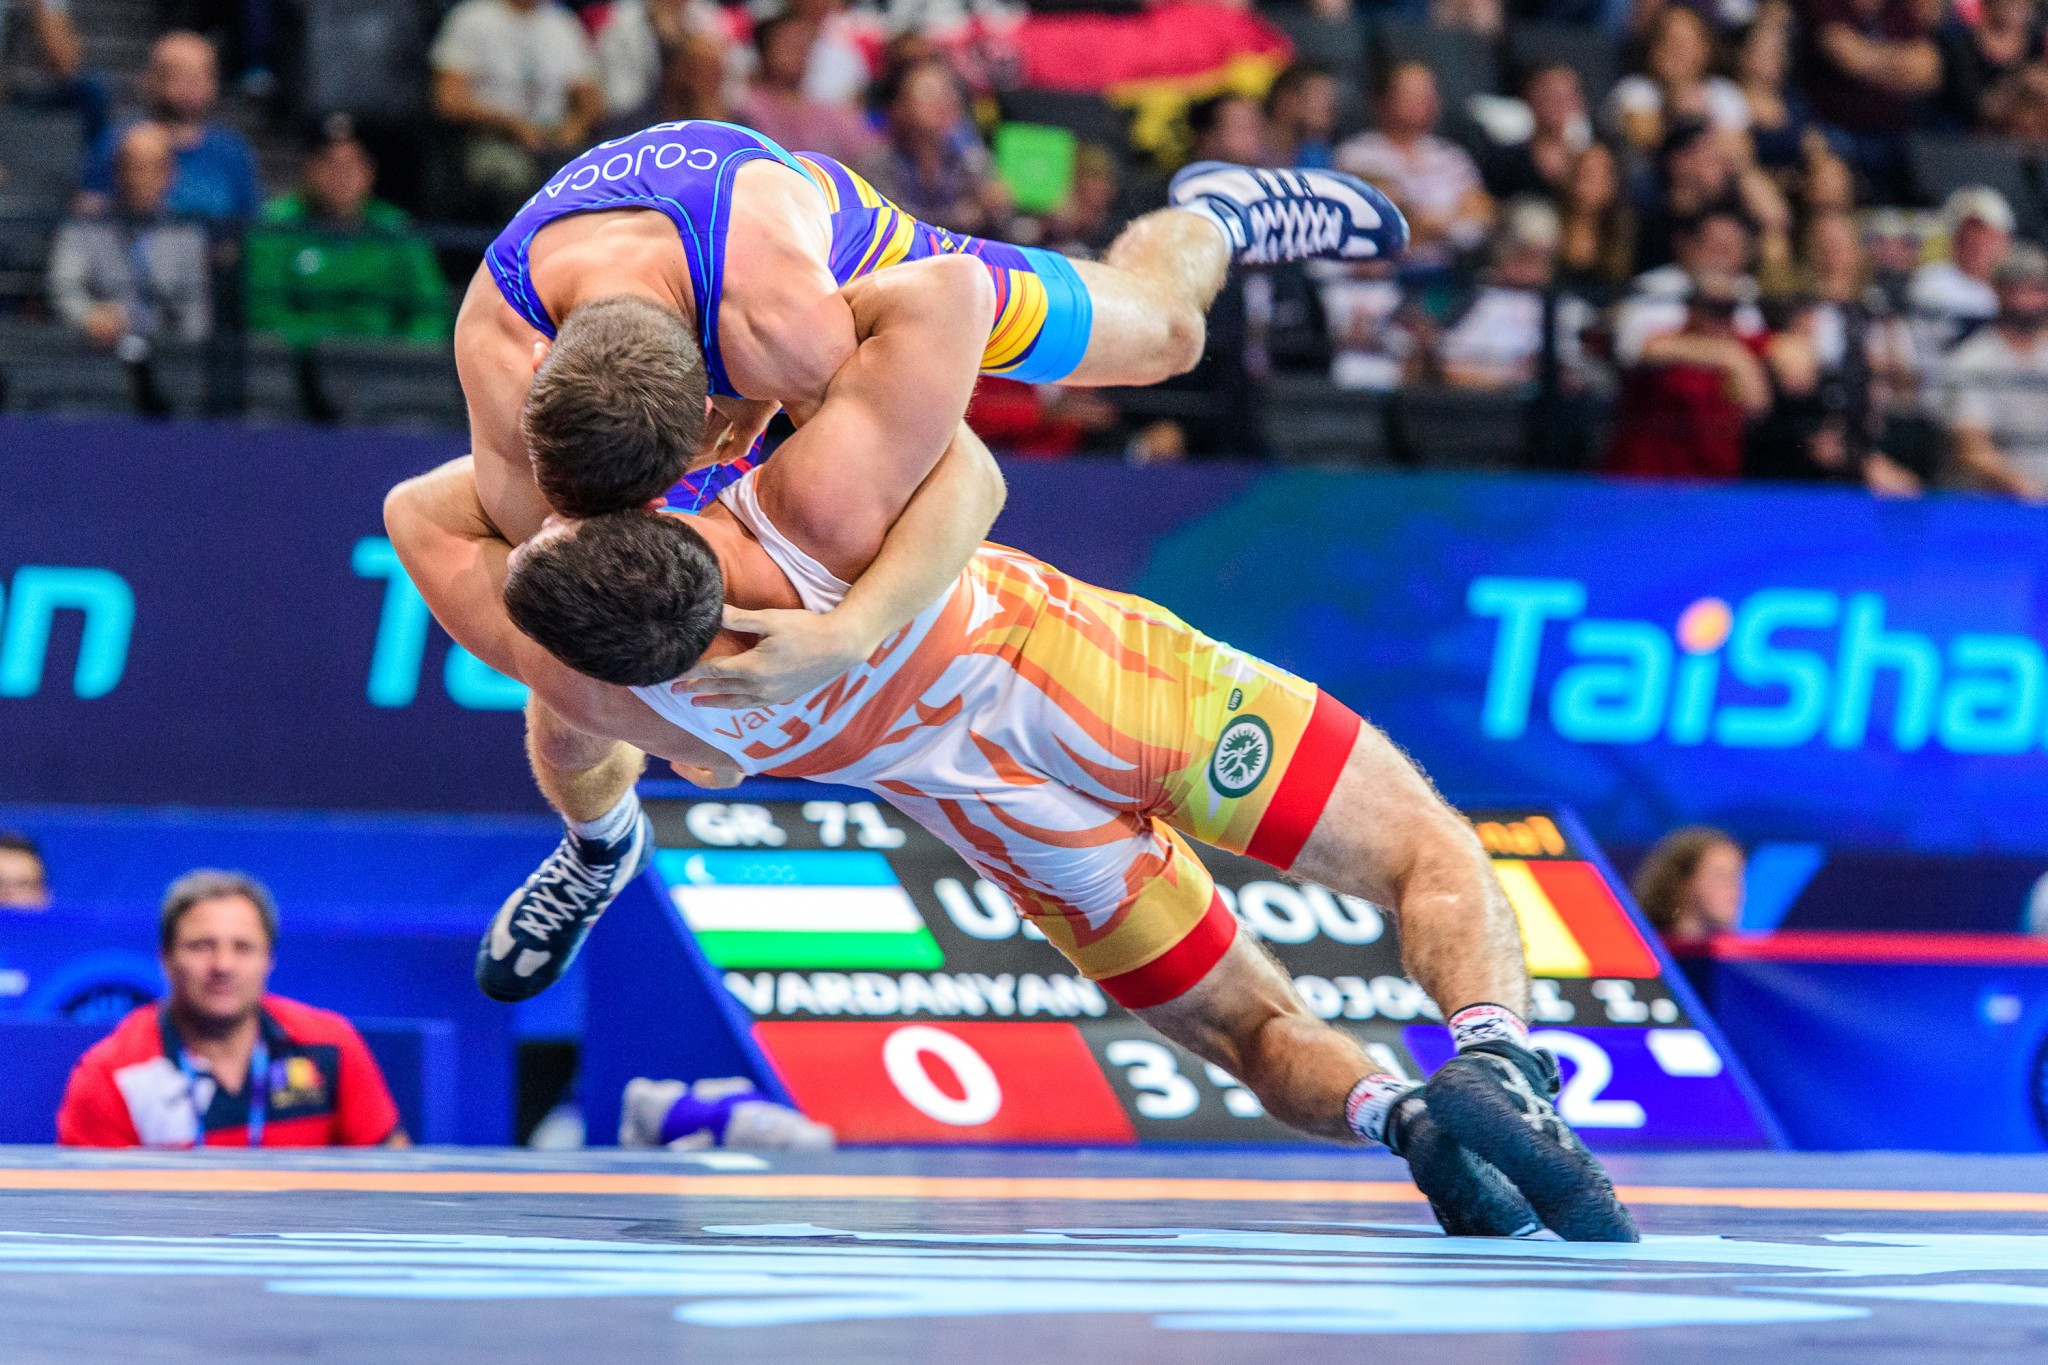 UWW Wrestling World Championships 2017: Day one of competition